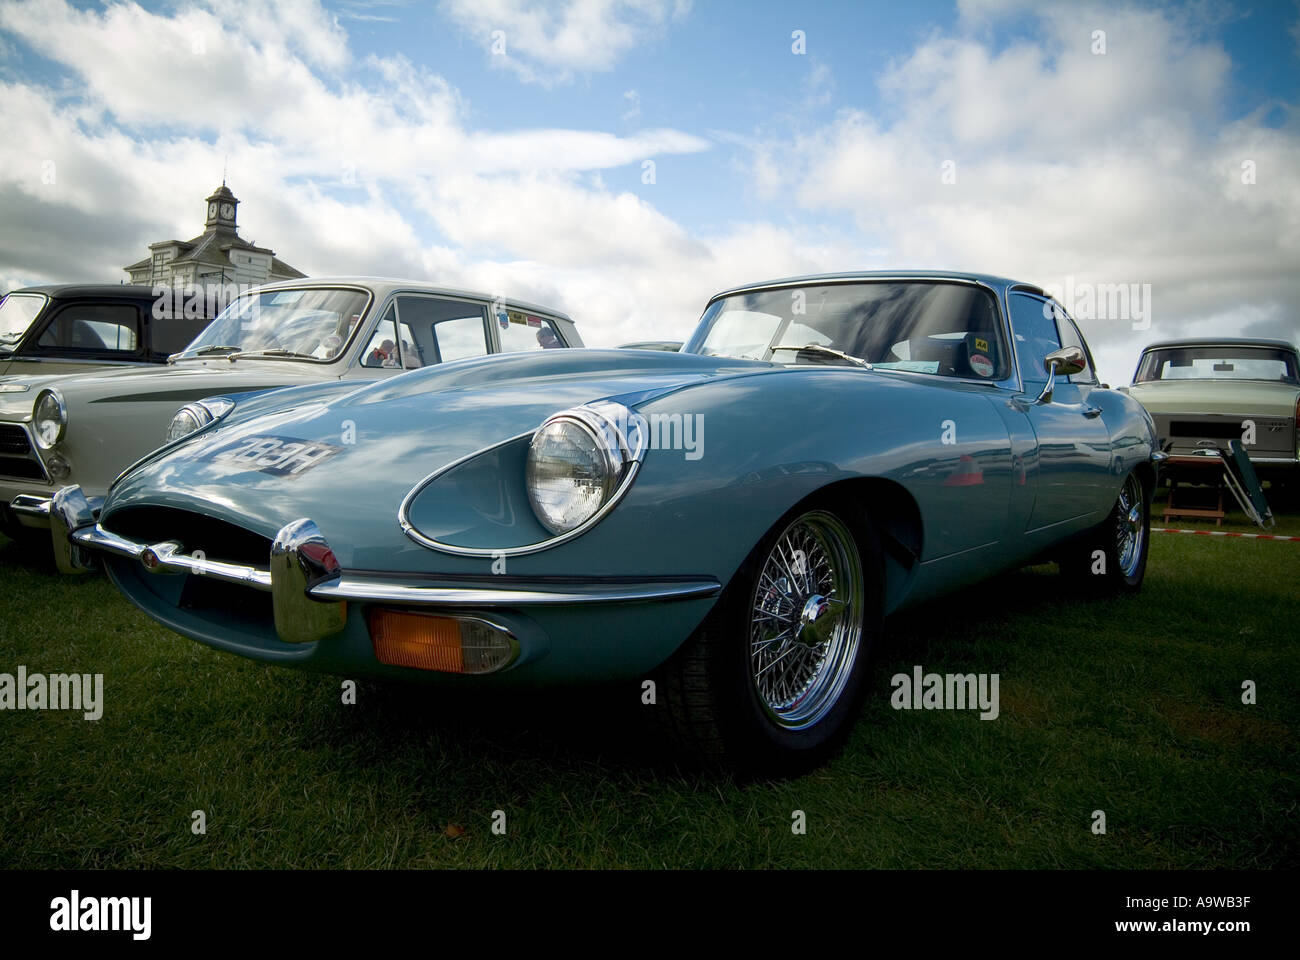 Jaguar E Type Engine Stock Photos & Jaguar E Type Engine Stock ...